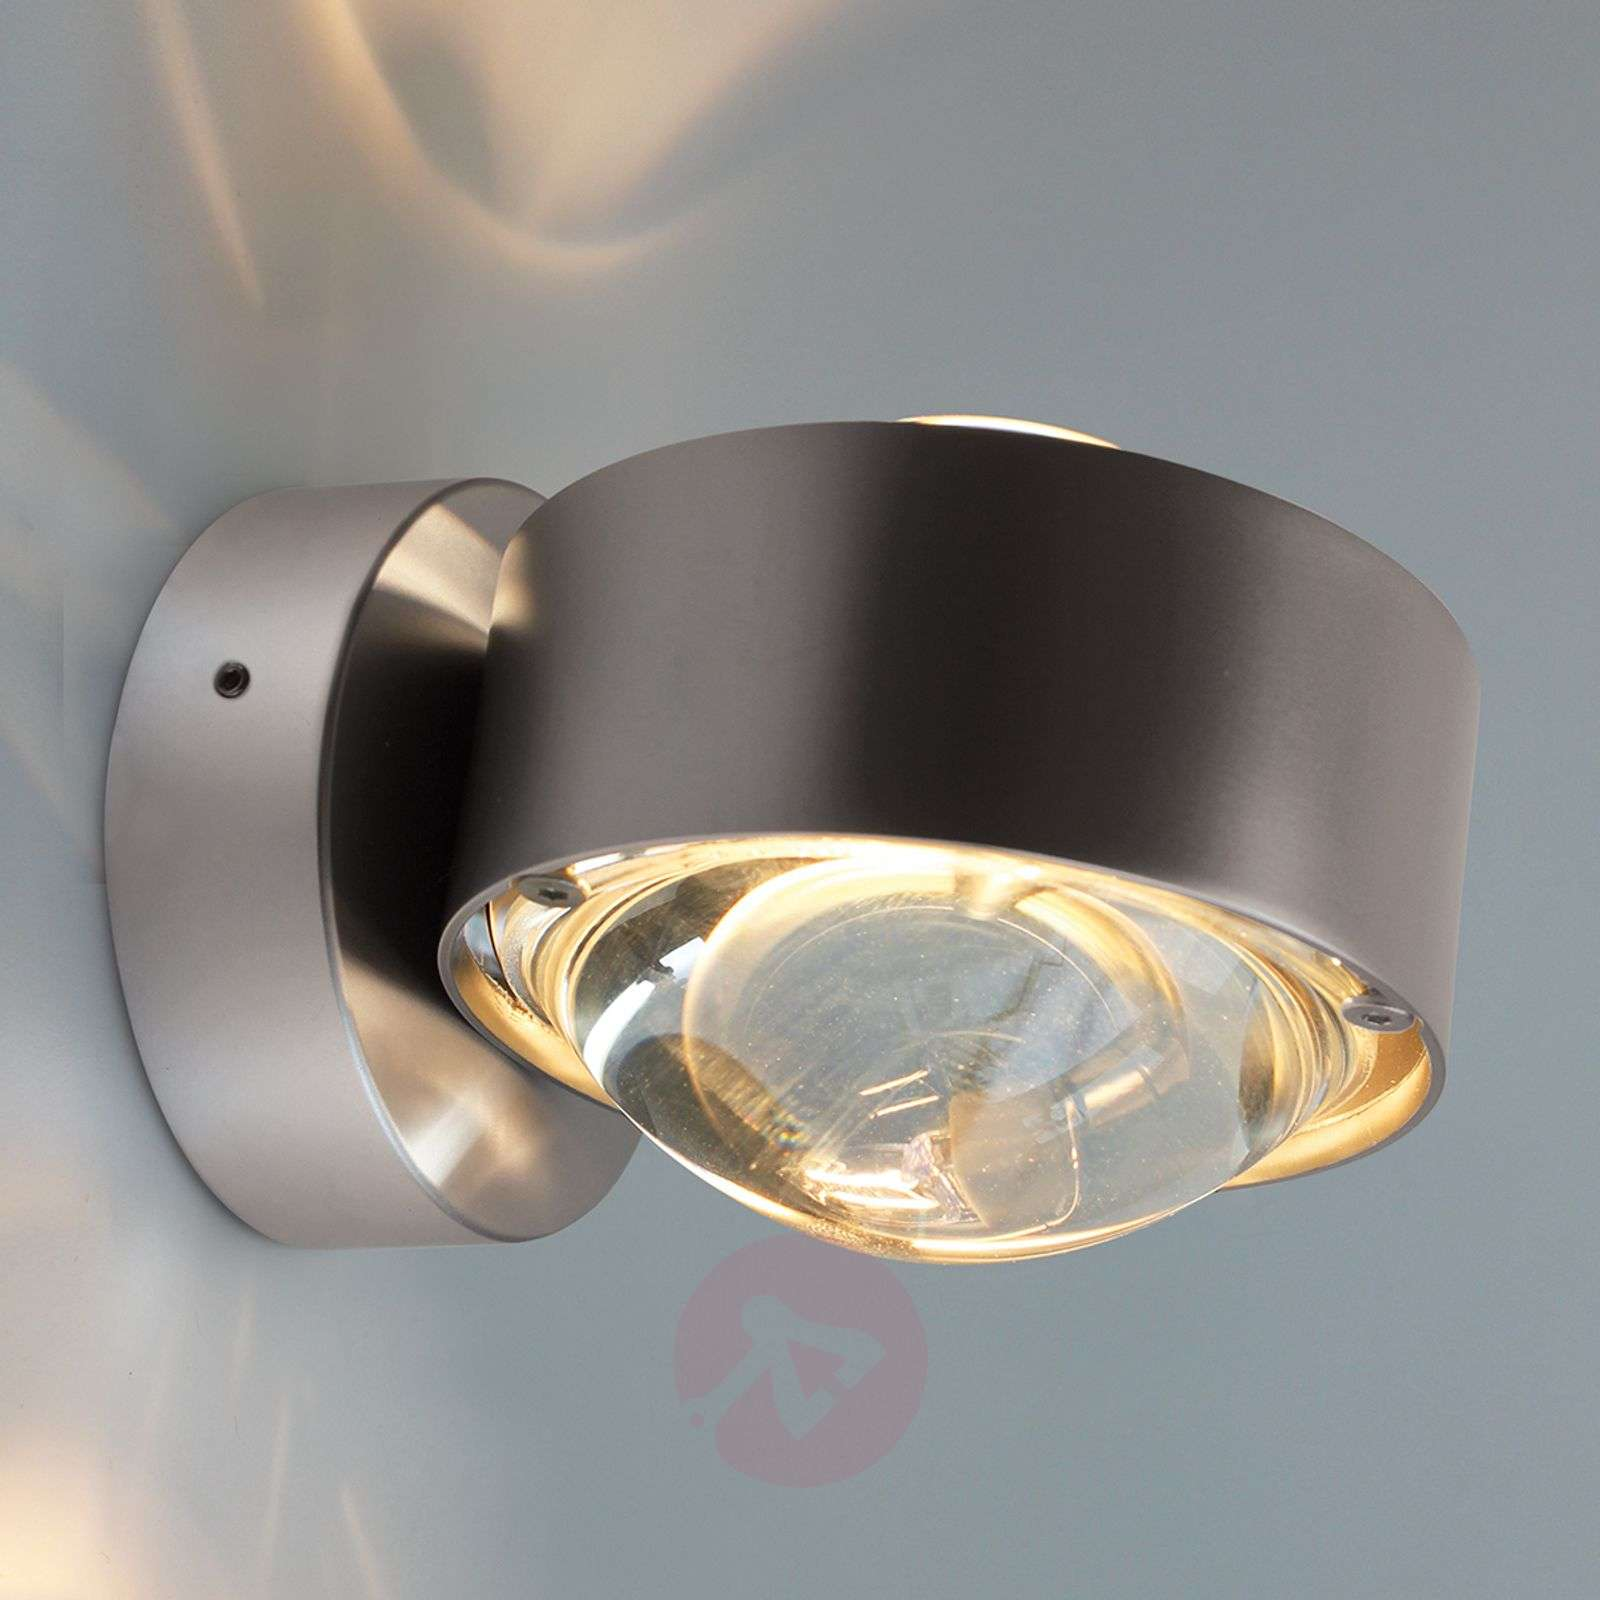 Beautiful wall light PUK WALL with 2 lenses-9020061X-05